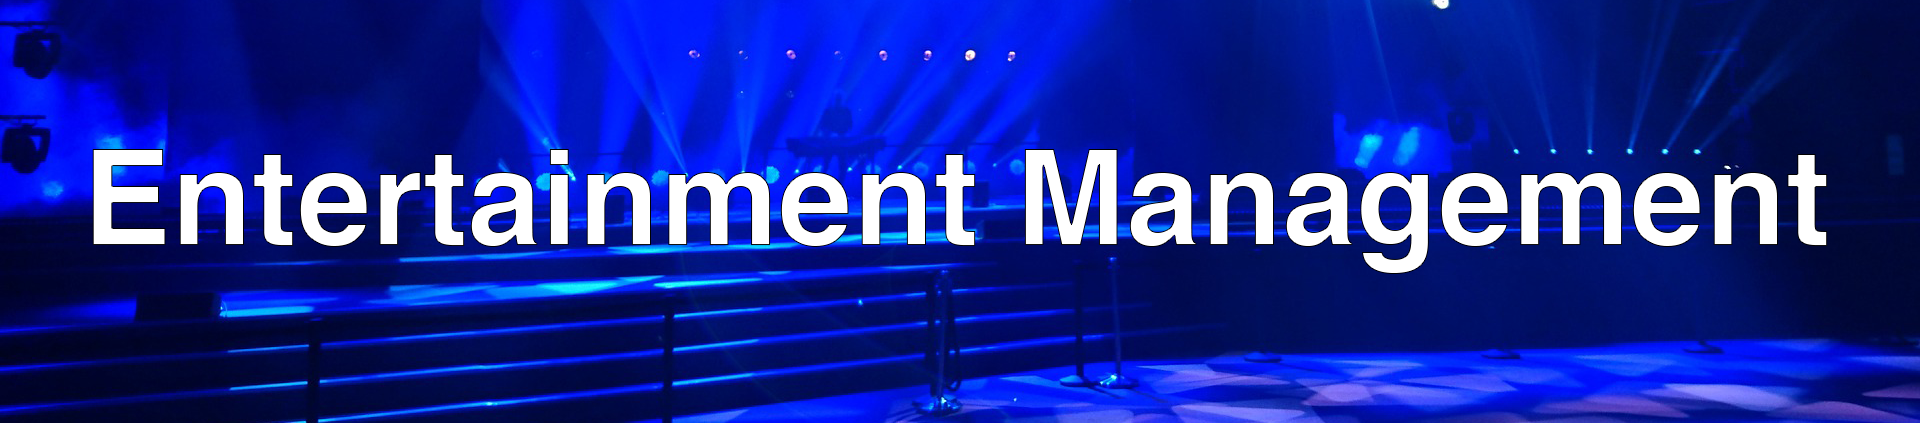 Entertainment Management Banner